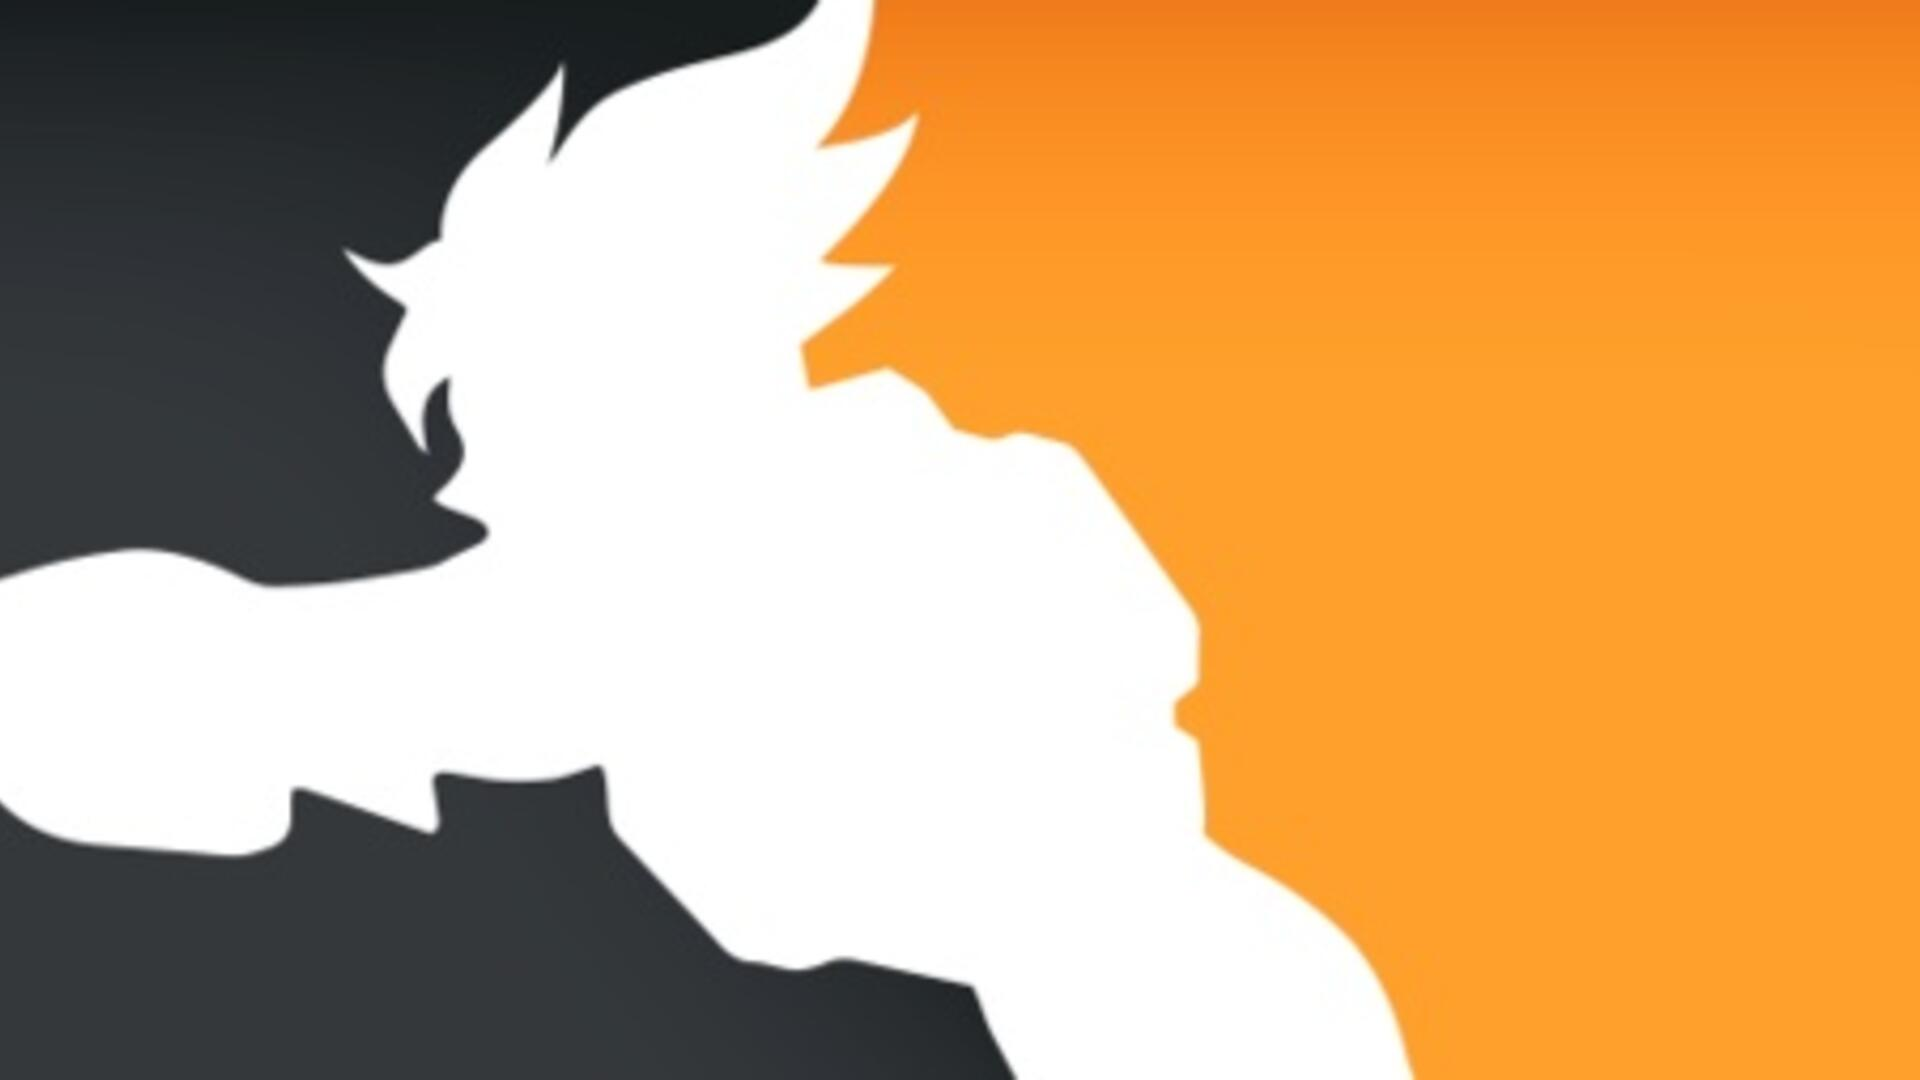 Overwatch League - New Skins, Stage 1 Week 2 Dates and Times, Results, How to Watch, Teams, Structure - Everything we Know